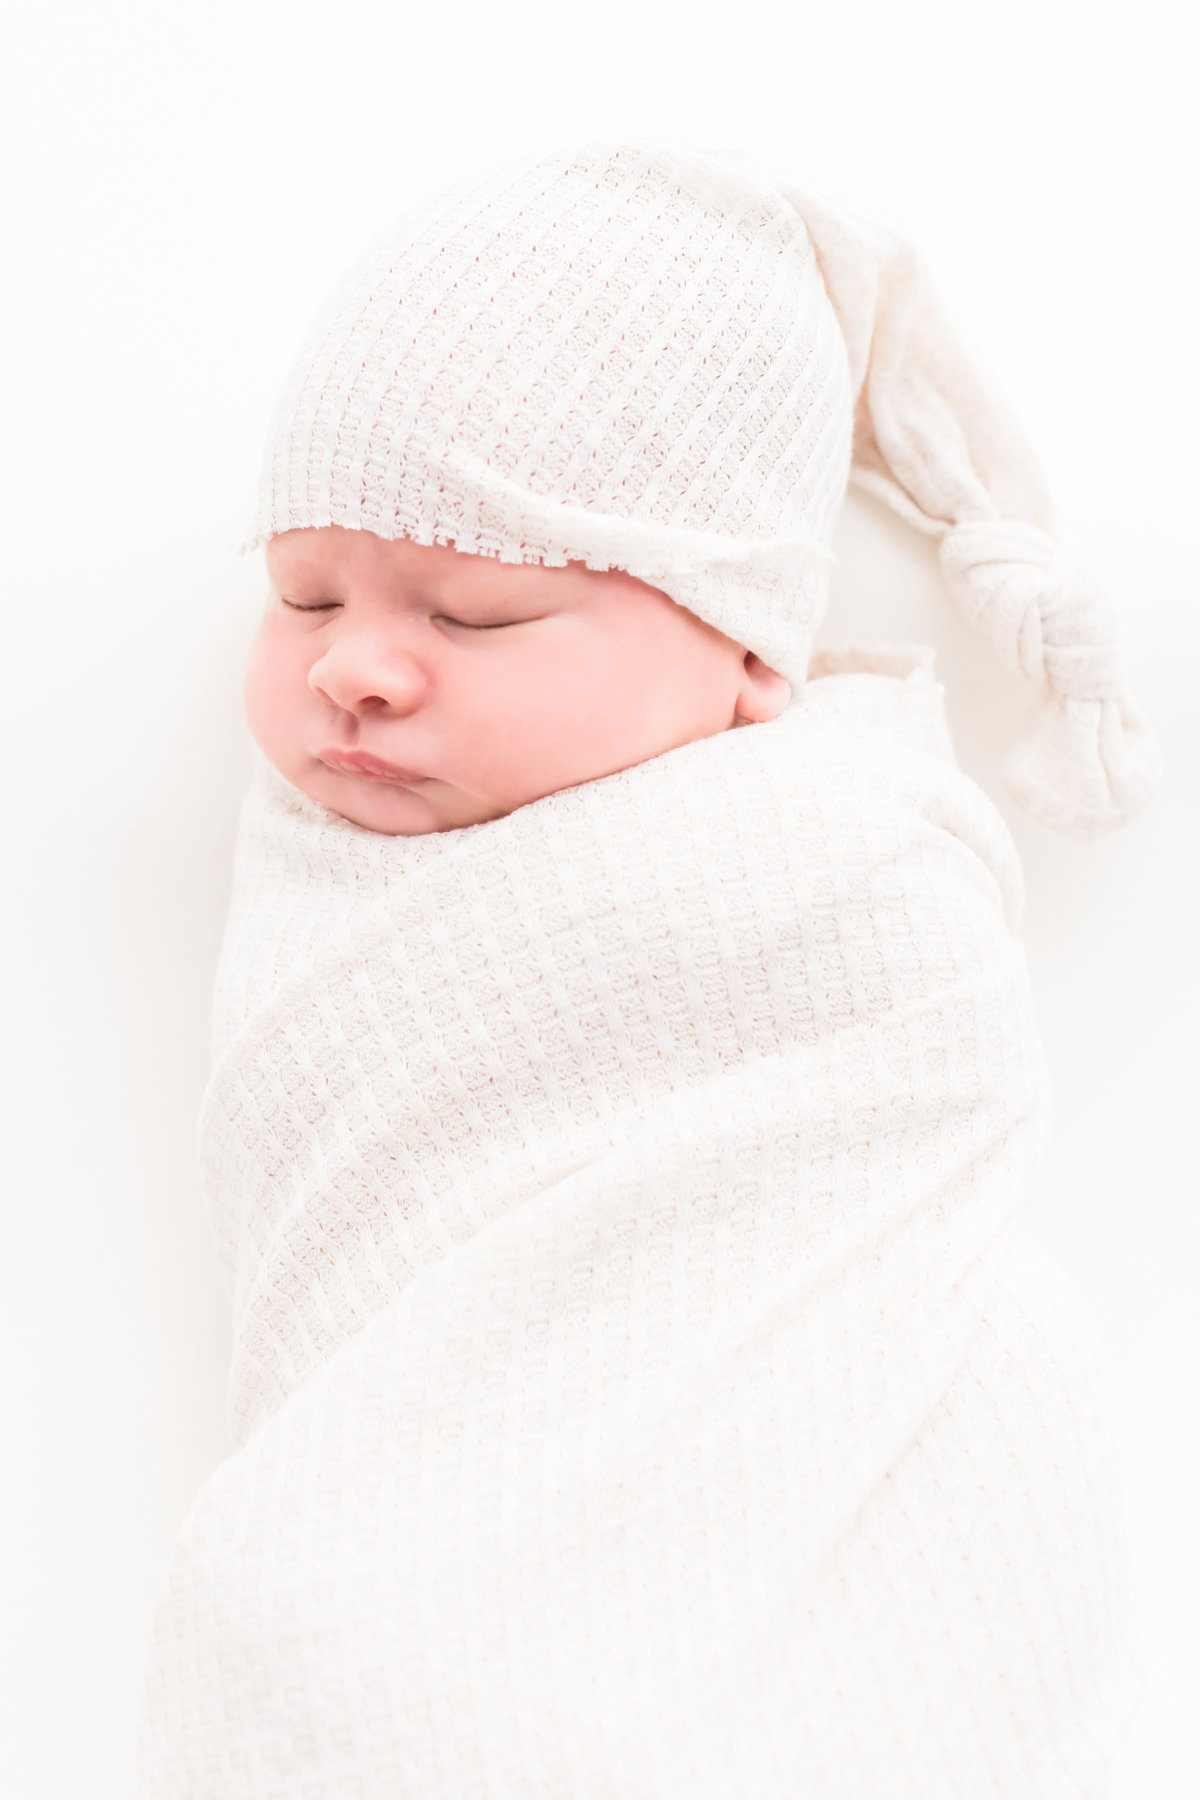 Newborn Photography - Sana Ahmed Portrait Photography (9)